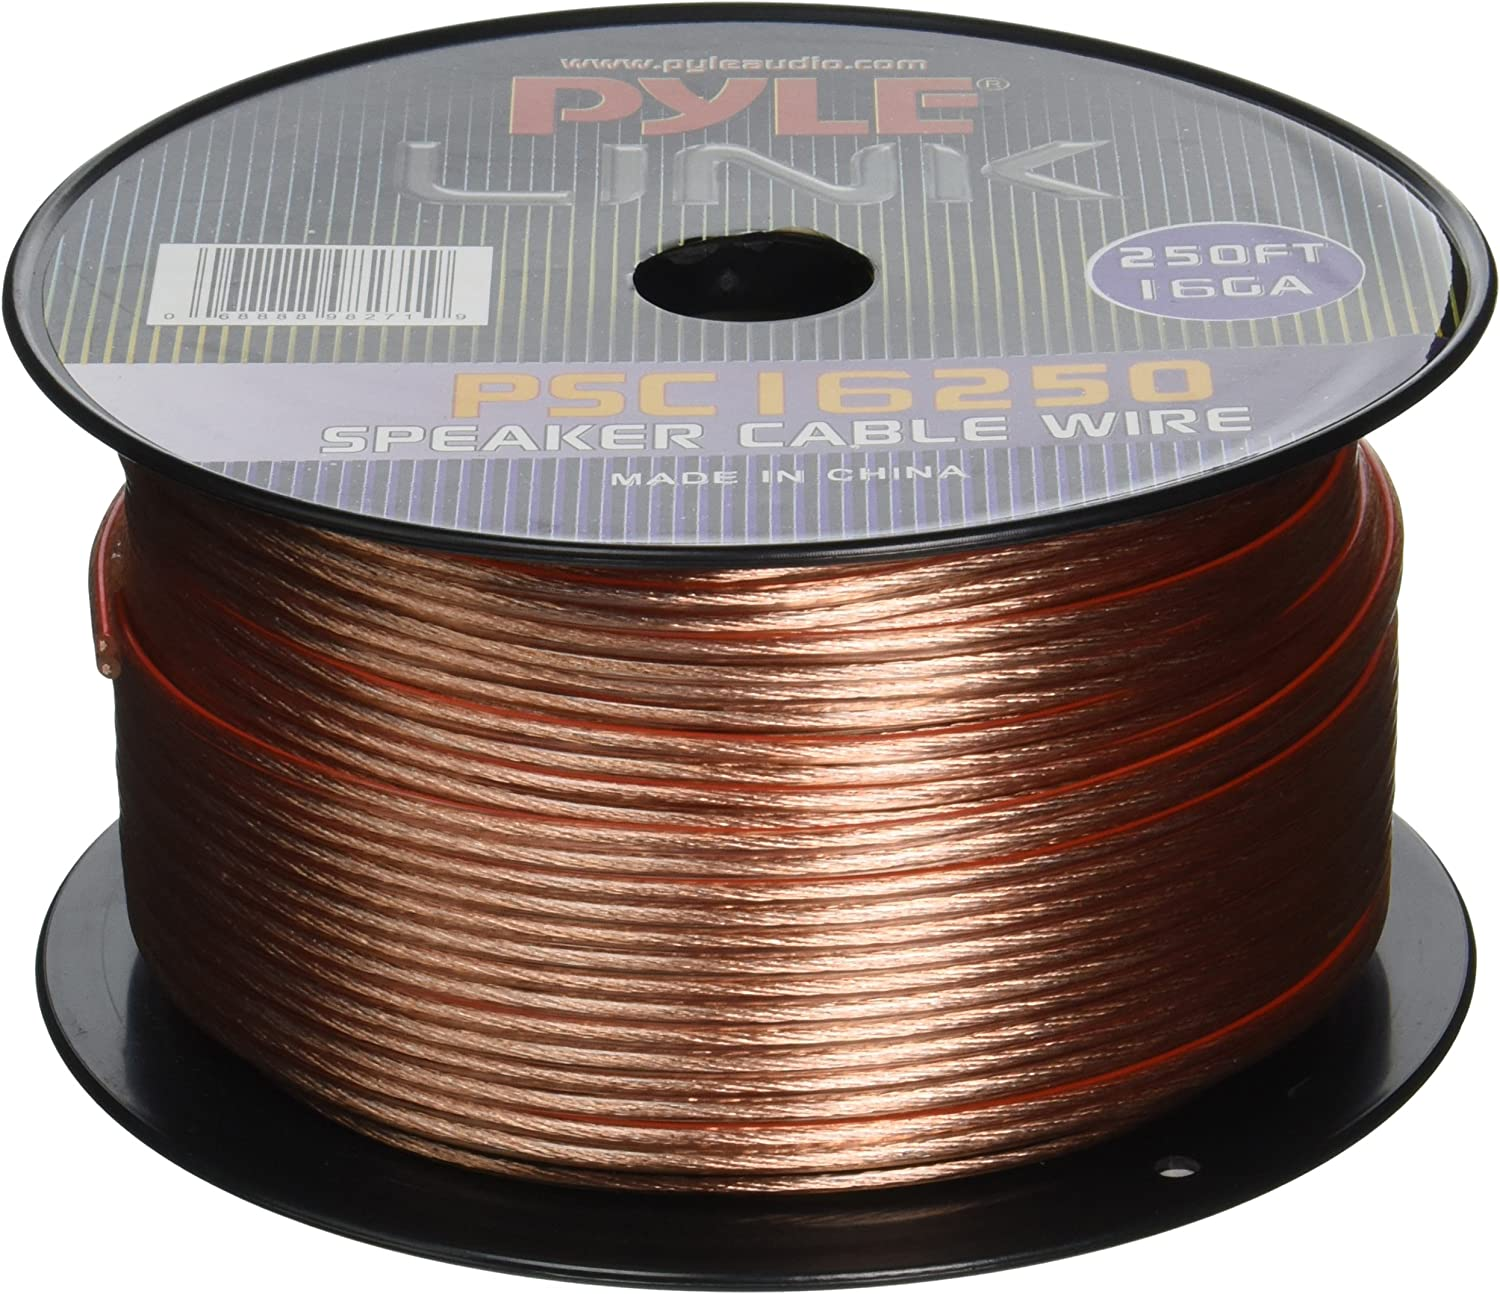 250ft 16 Gauge Speaker Wire - Copper Cable in Spool for Connecting Audio Stereo to Amplifier, Surround Sound System, TV Home Theater and Car Stereo - Pyle PSC16250: Home Audio & Theater